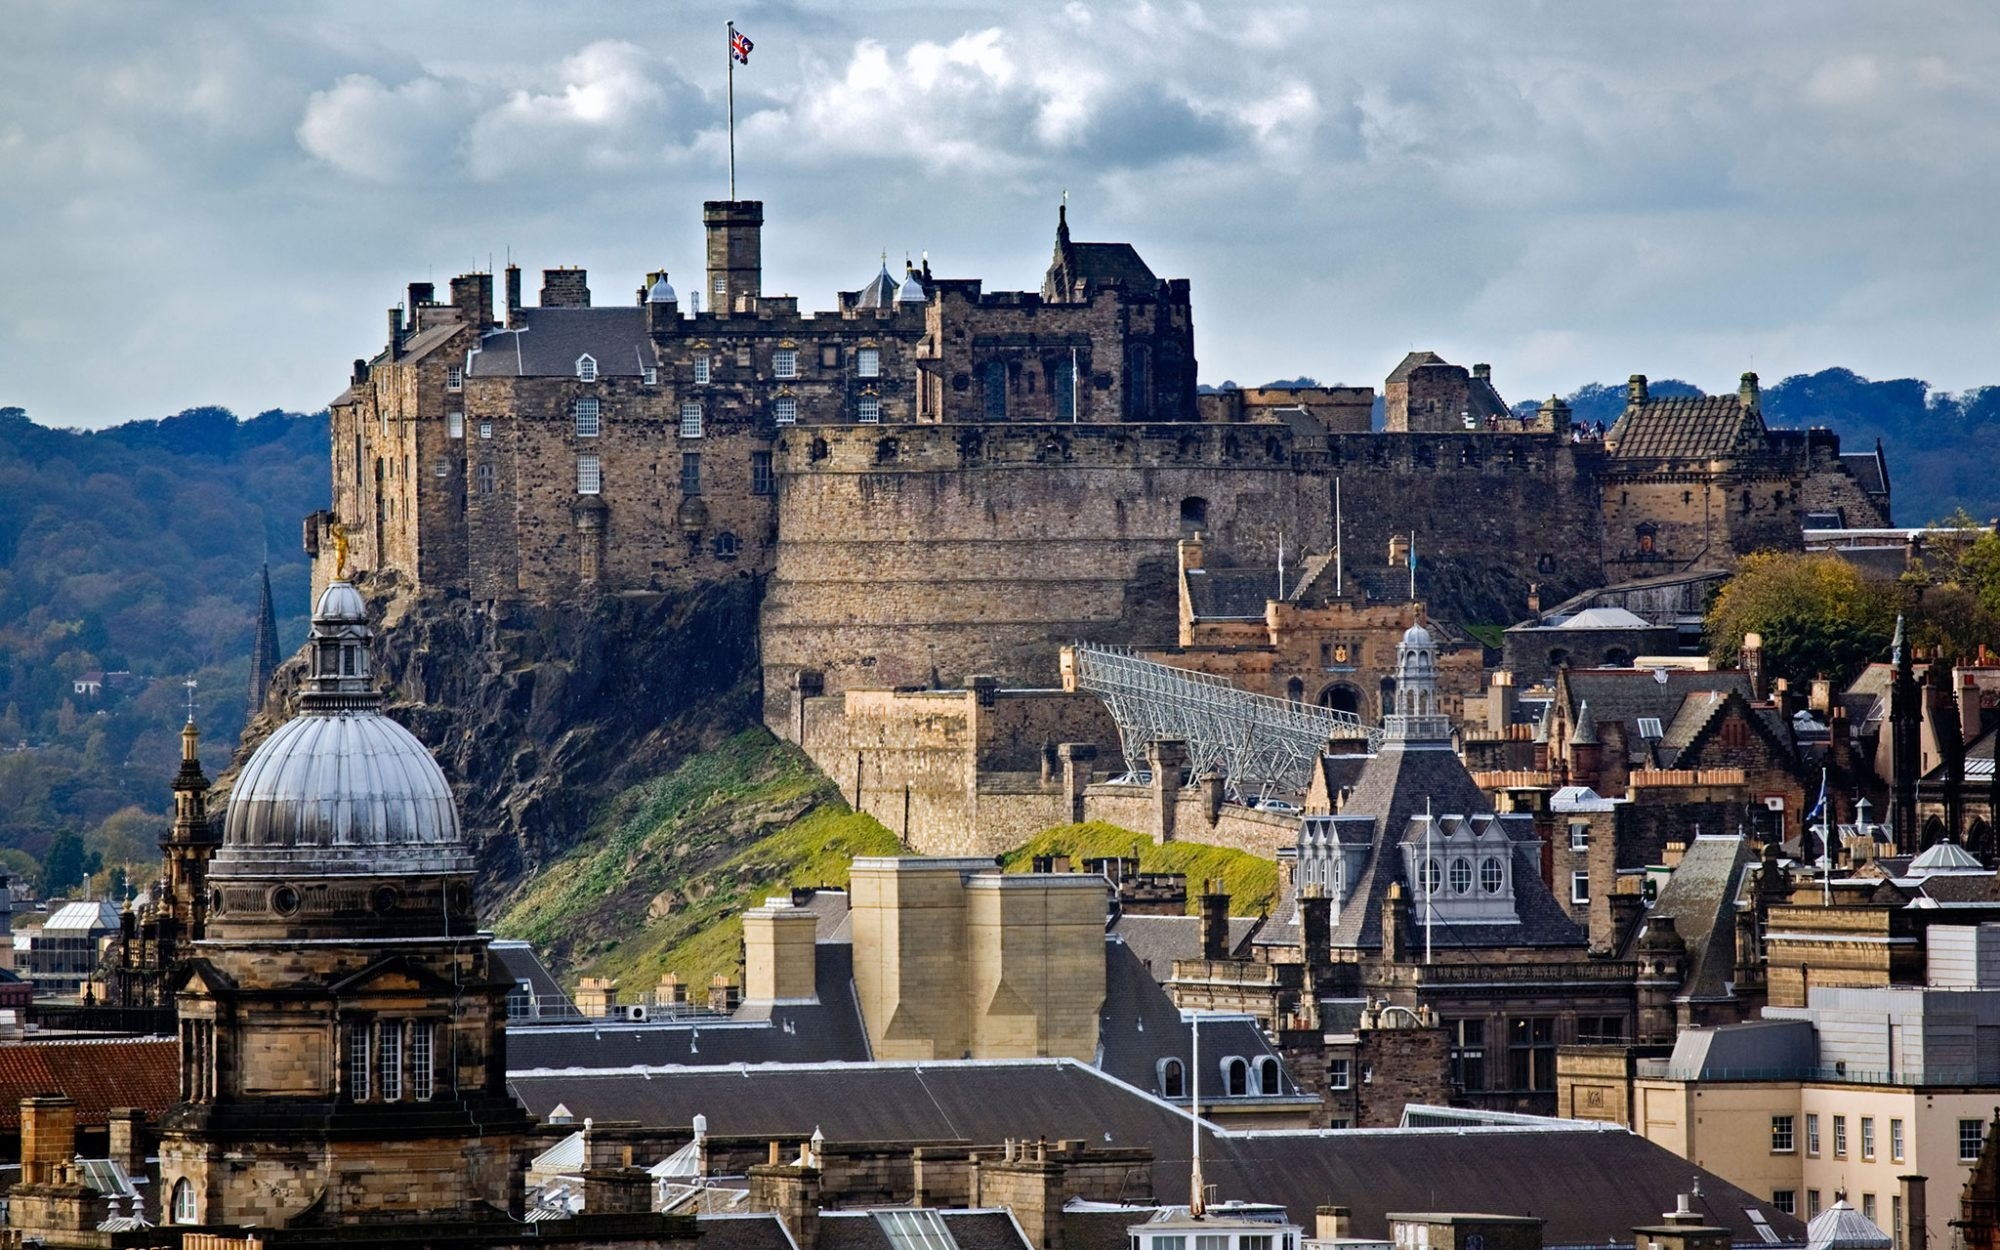 World's Most-Visited Castles: No. 17 Edinburgh Castle